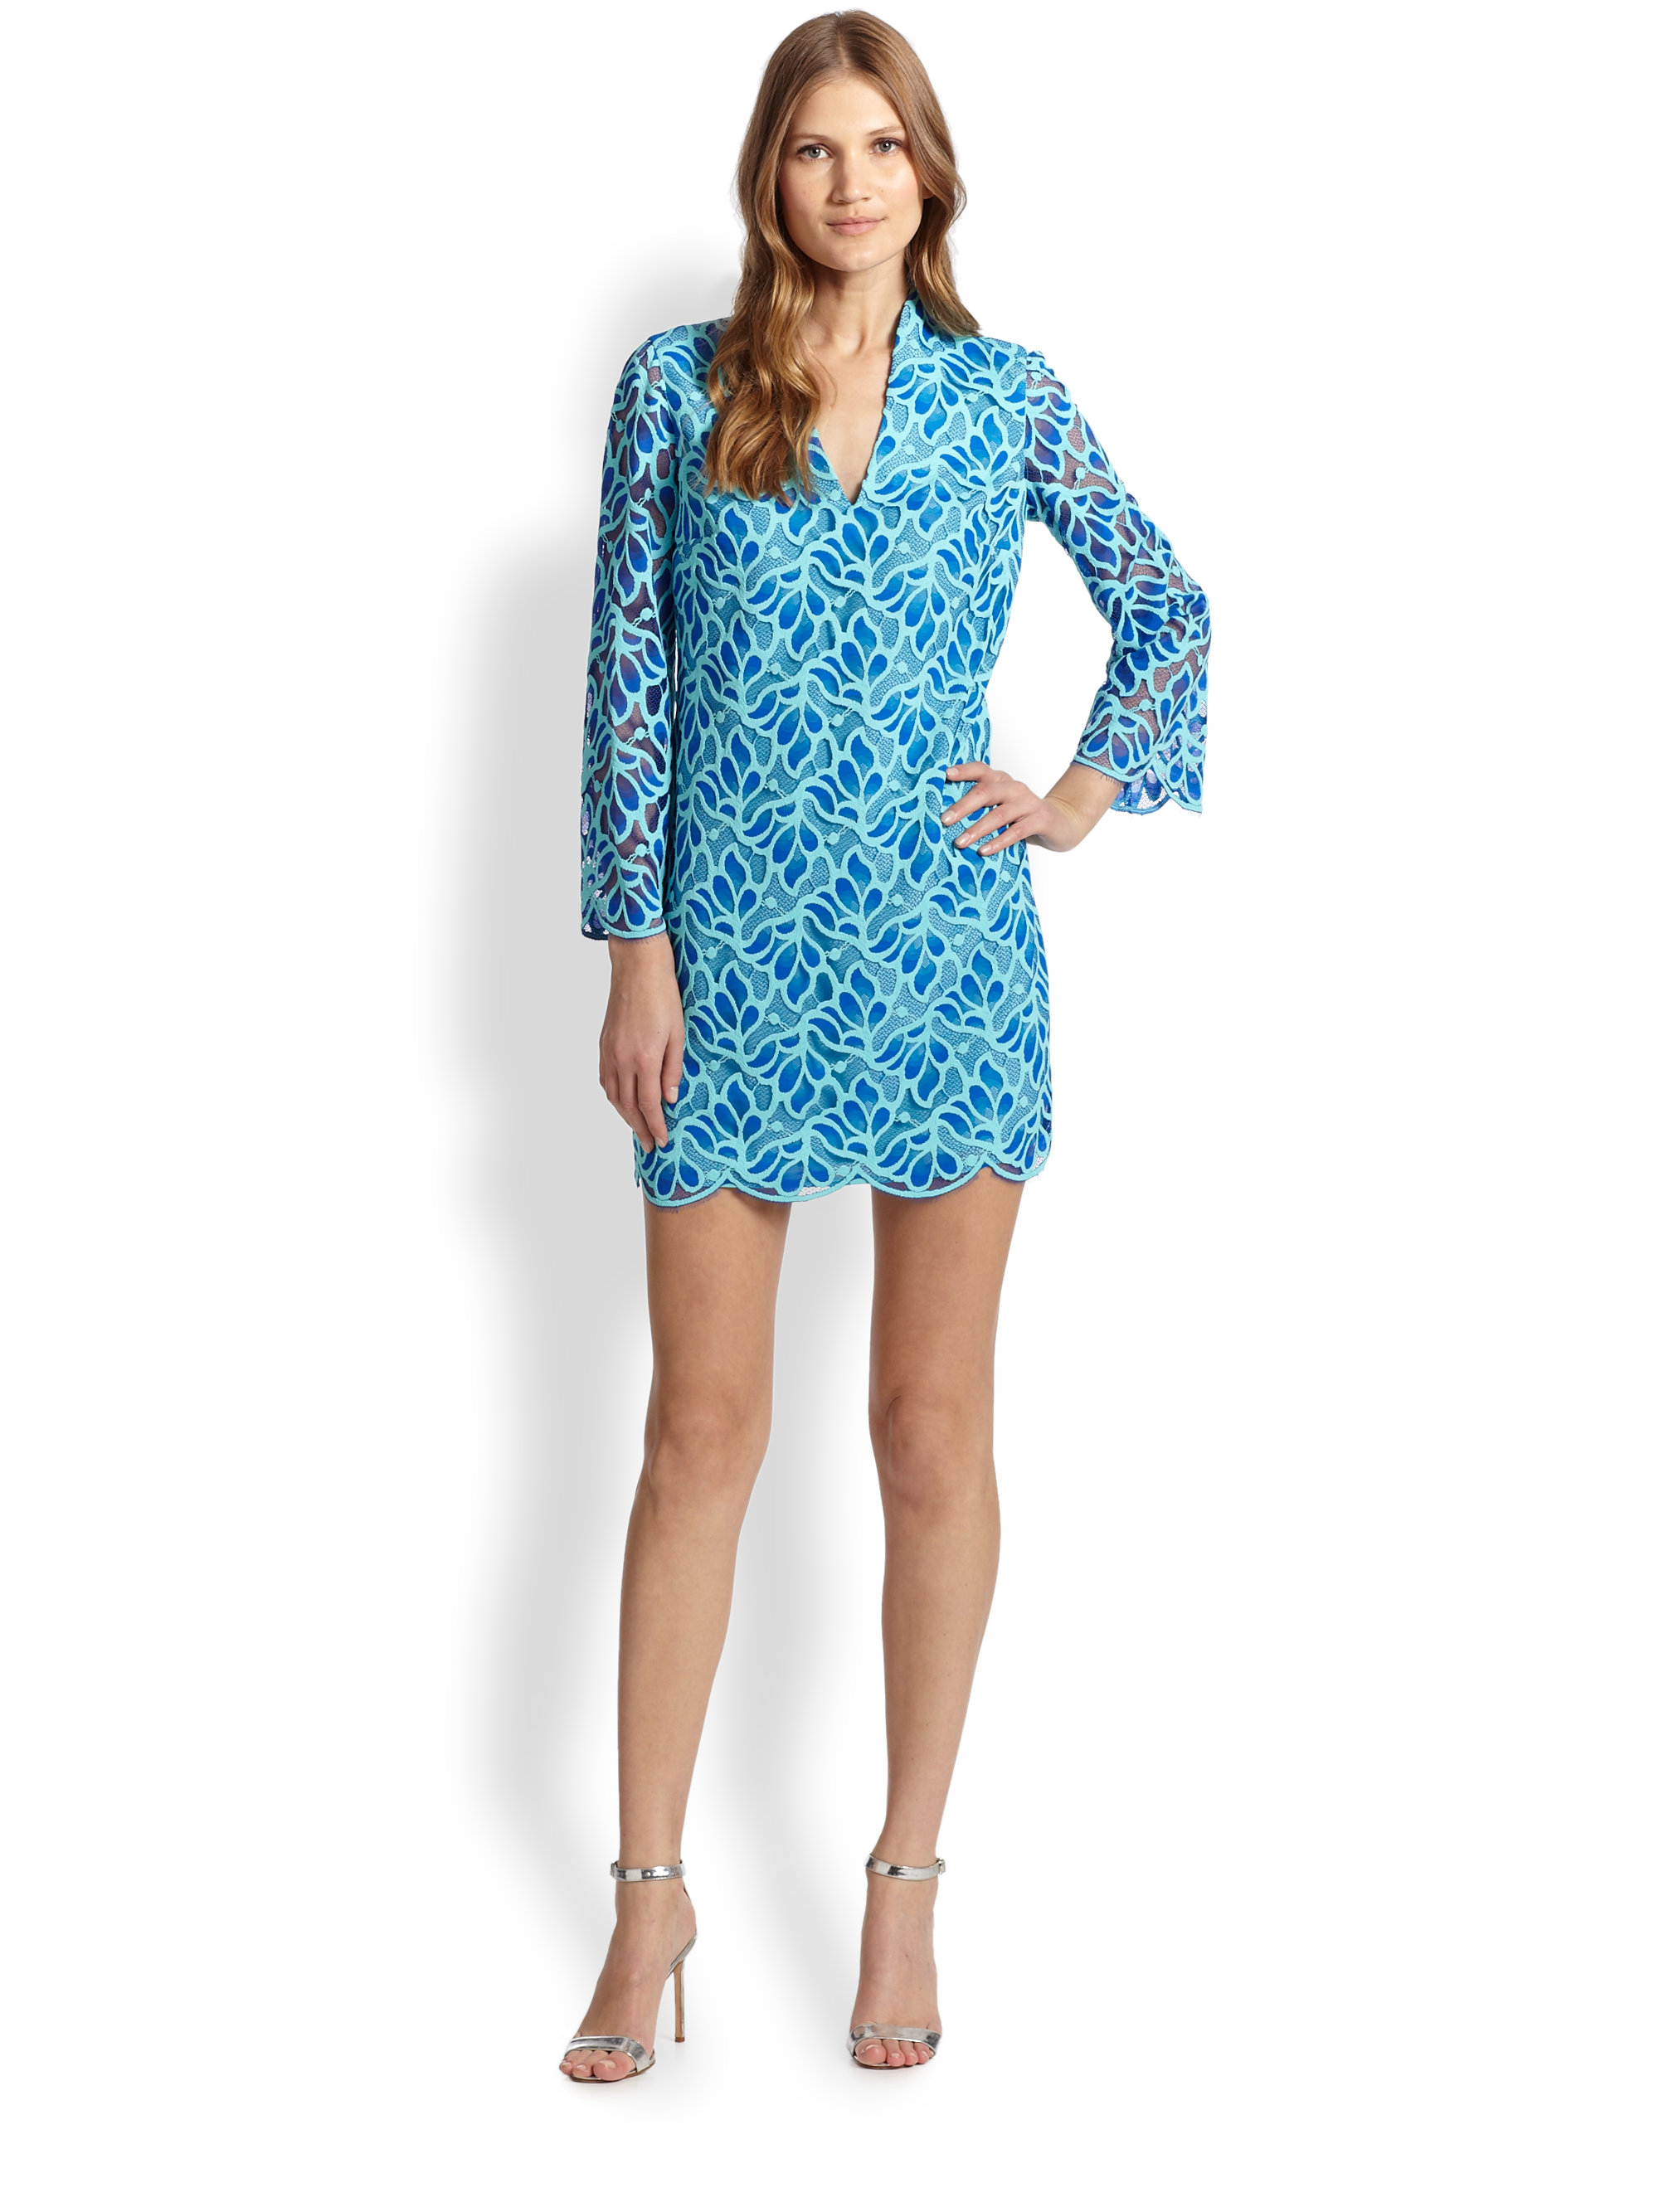 Lyst - Lilly Pulitzer Devina Dress in Blue